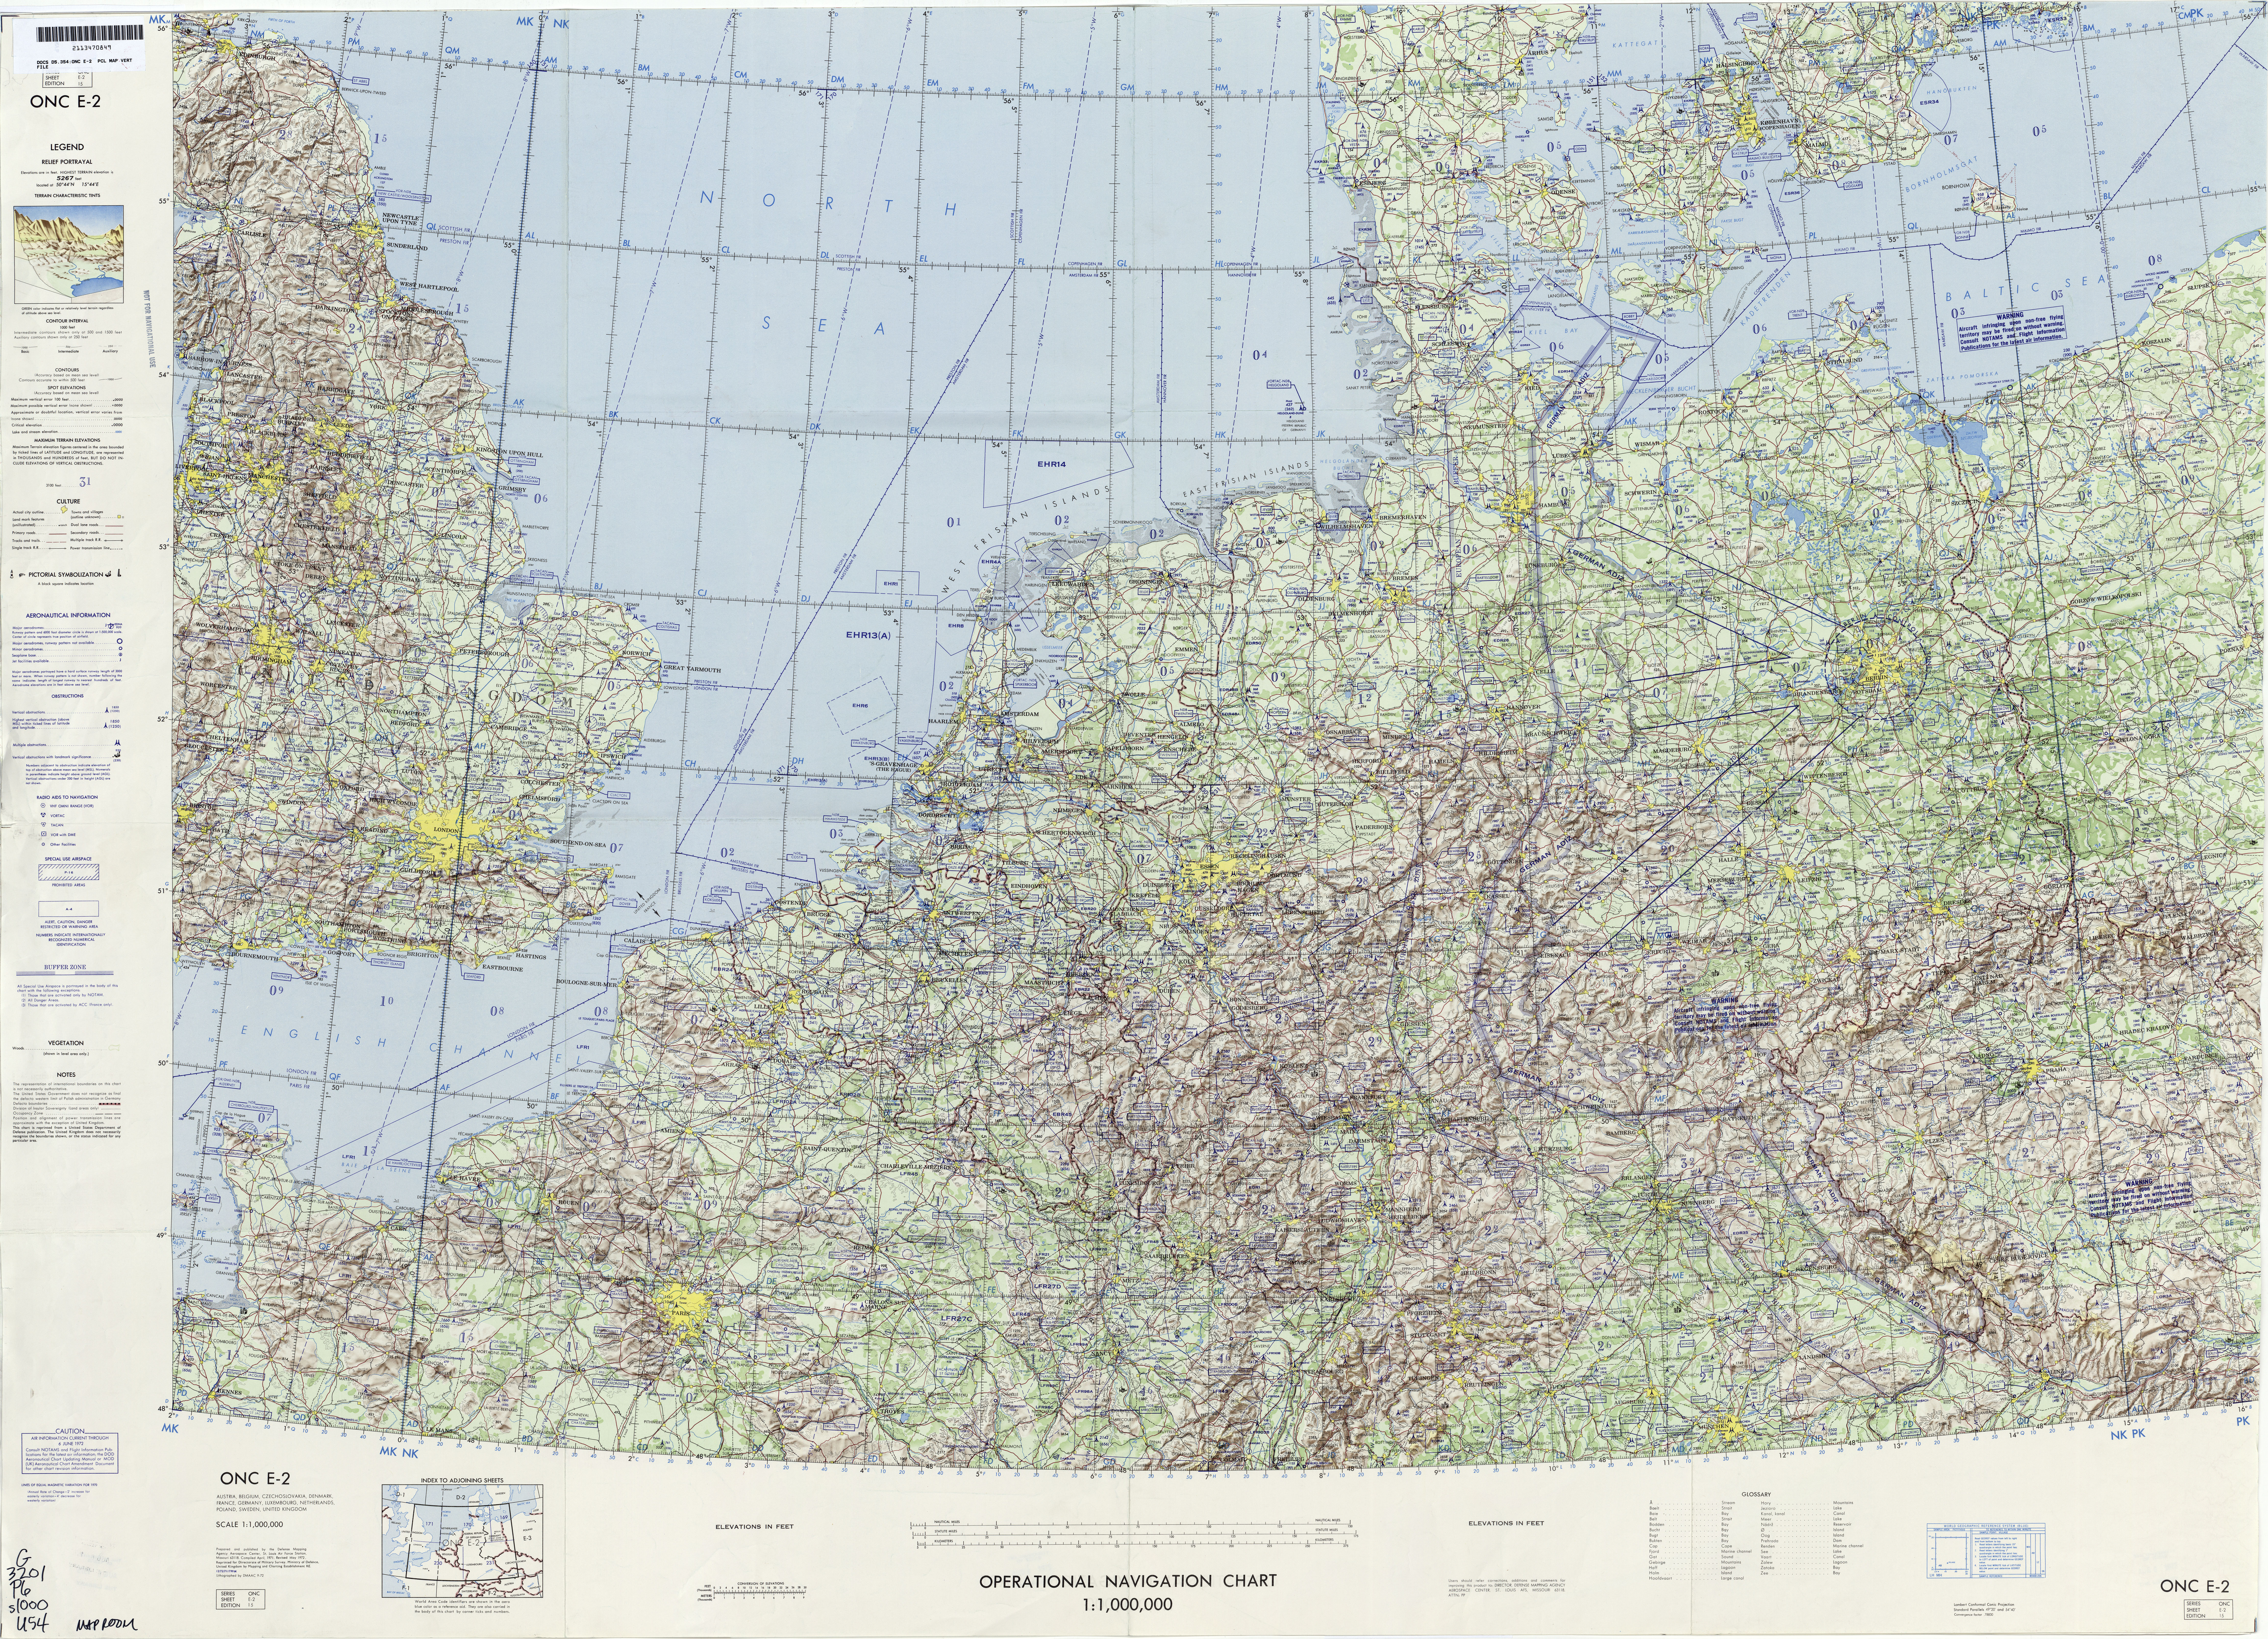 Operational navigation charts perry castaeda map collection onc e 2 sciox Image collections